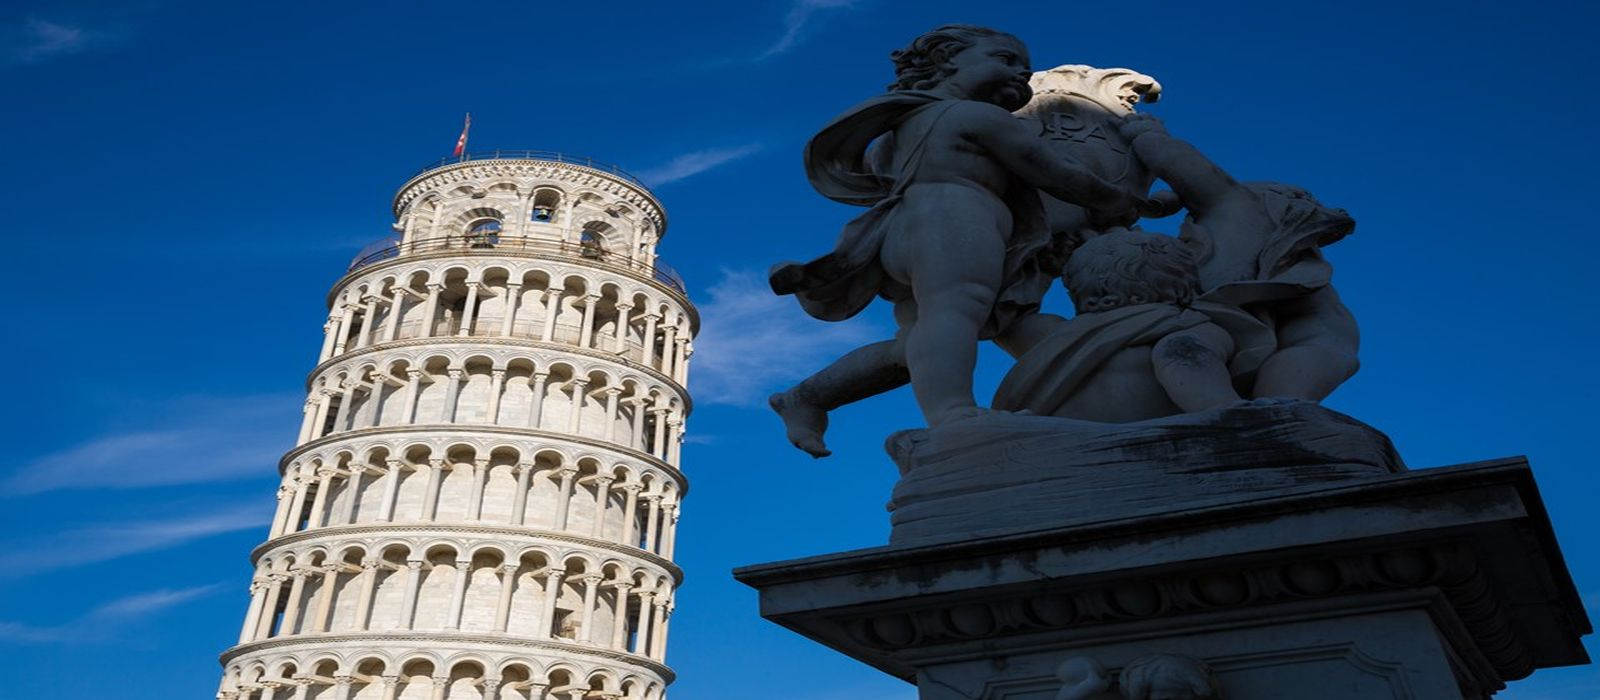 pisa gay singles There is no better gay guide of pisa than that which you will discover on menkarta the site delivers some of the finest data on every thing from gay dating to gay sports gatherings.